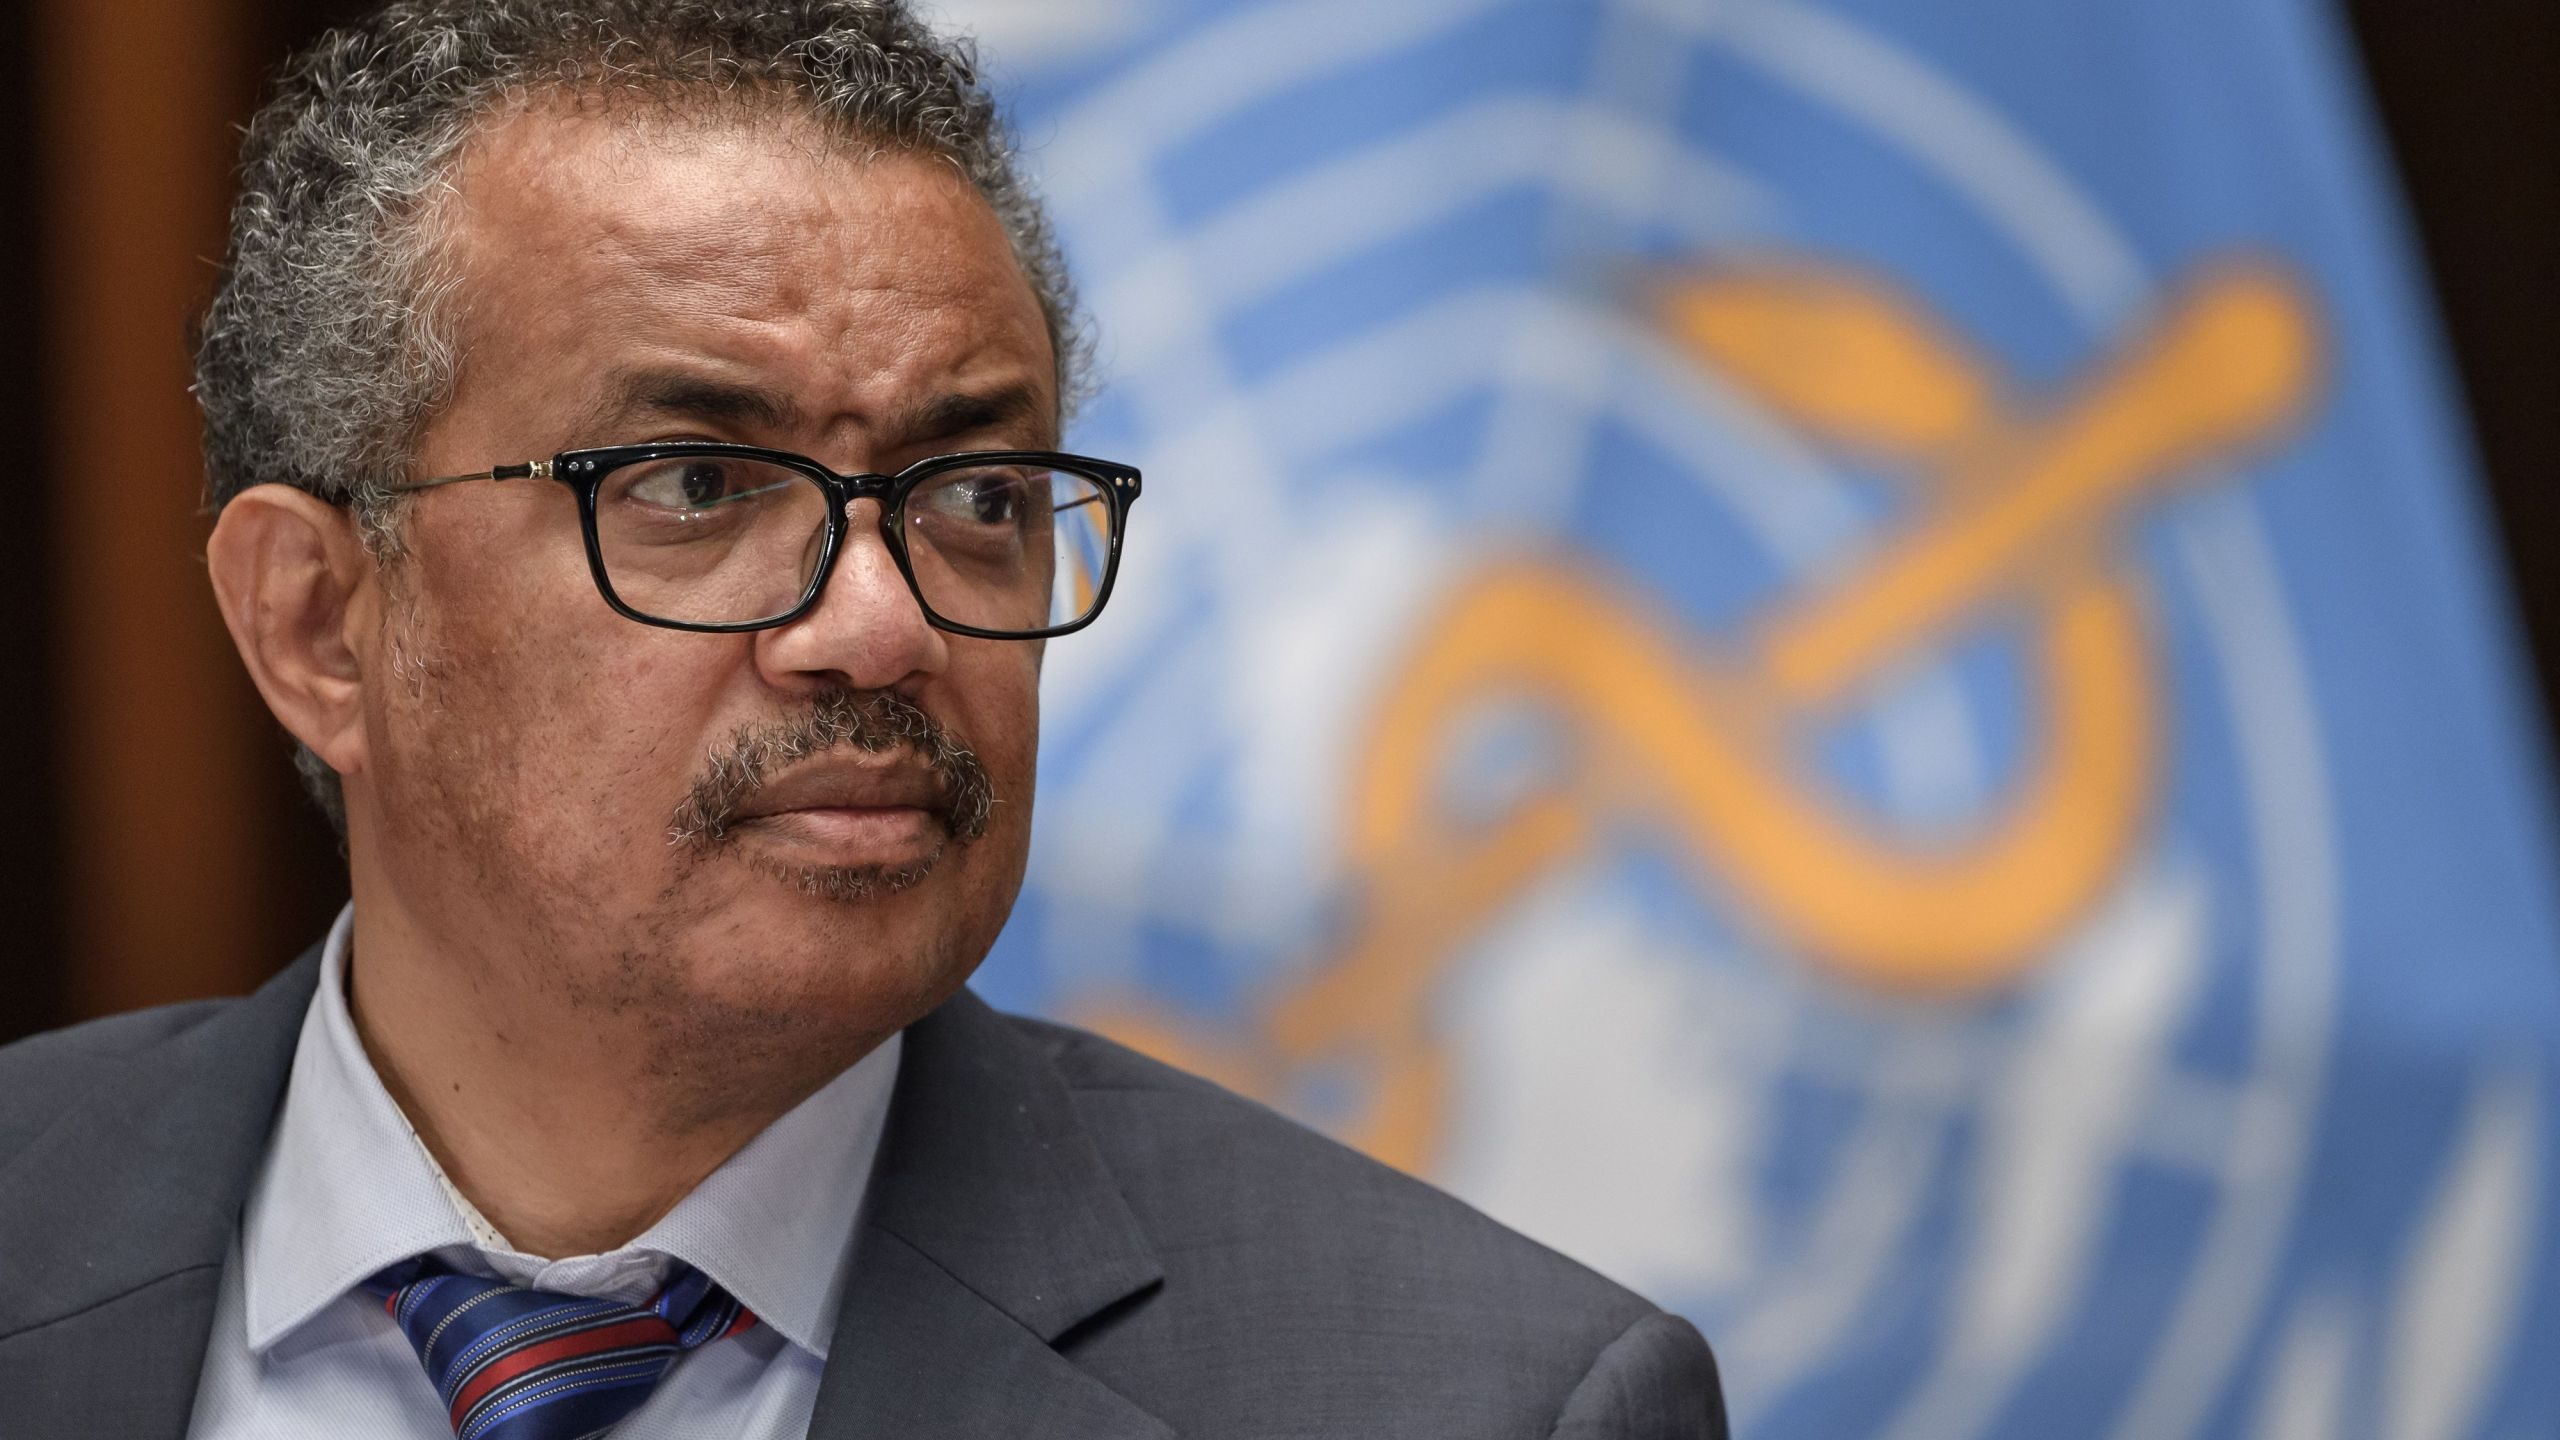 World Health Organization (WHO) Director-General Tedros Adhanom Ghebreyesus attends a press conference organised by the Geneva Association of United Nations Correspondents (ACANU) amid the COVID-19 outbreak, caused by the novel coronavirus, on July 3, 2020 at the WHO headquarters in Geneva. (FABRICE COFFRINI/POOL/AFP via Getty Images)